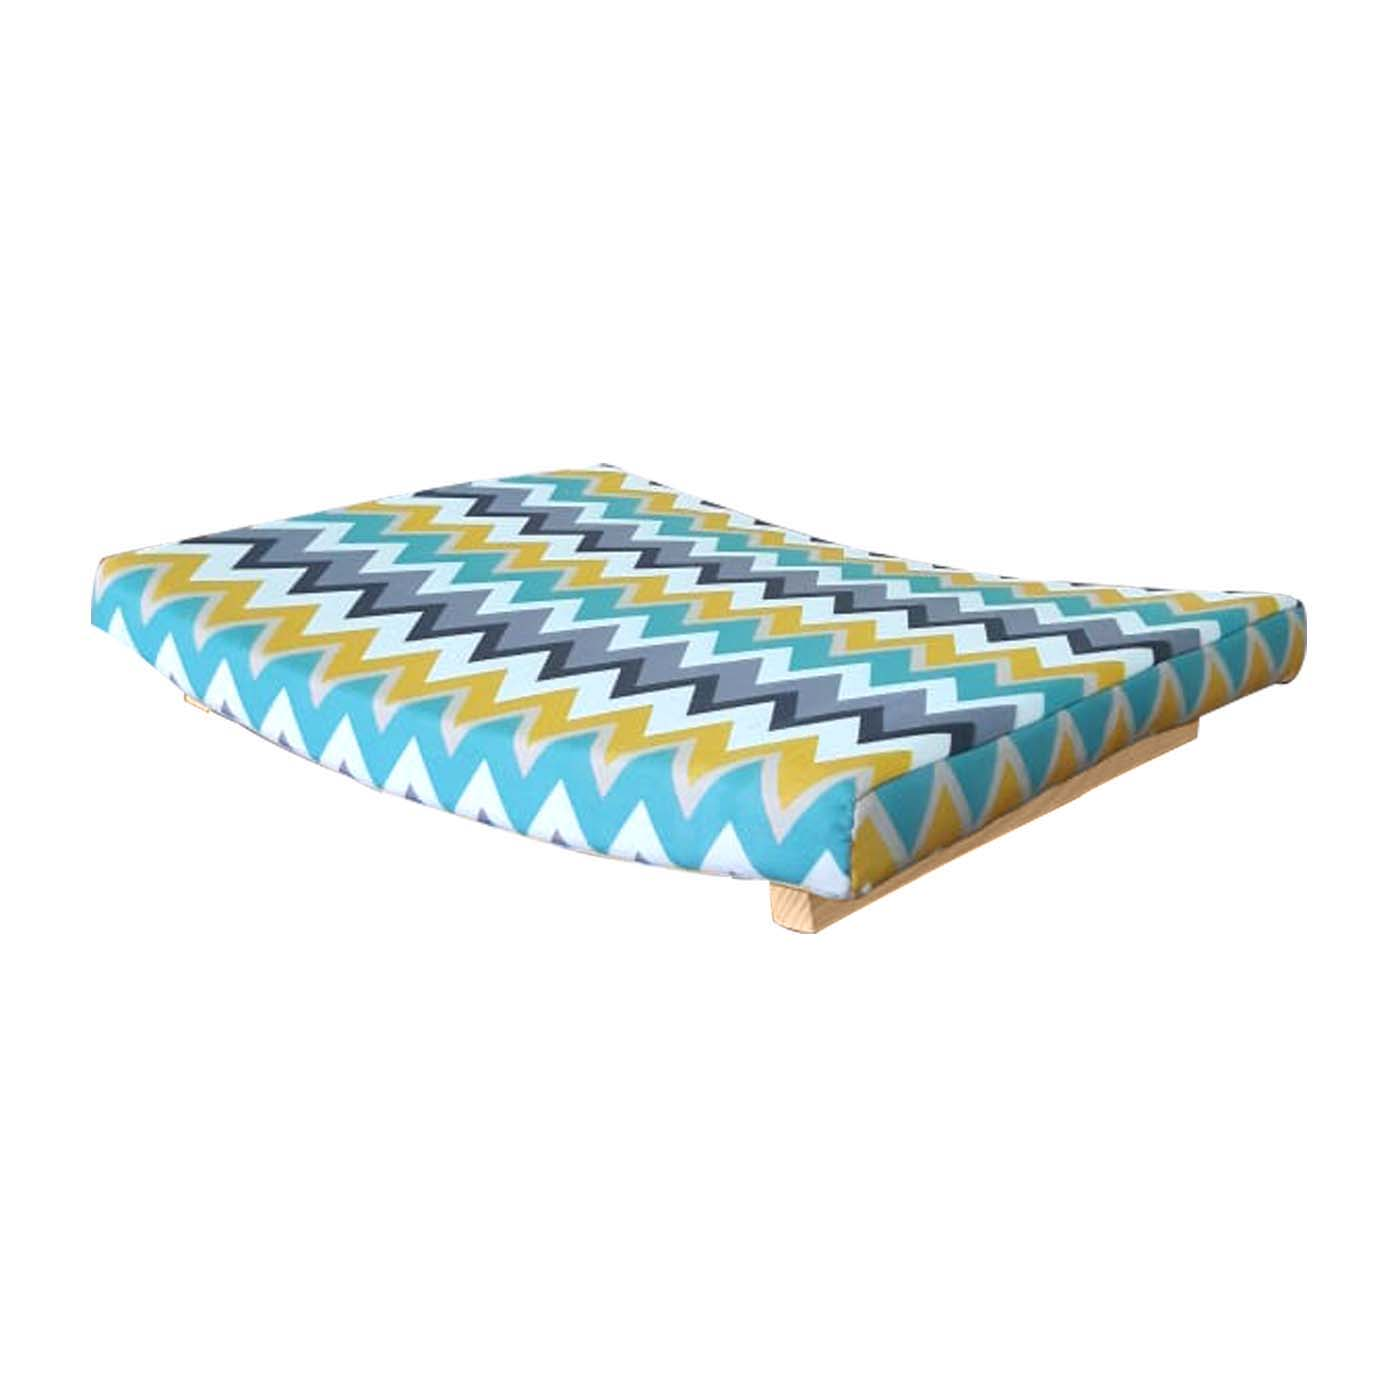 The Blue Printed Mascota Cama Pet Bed